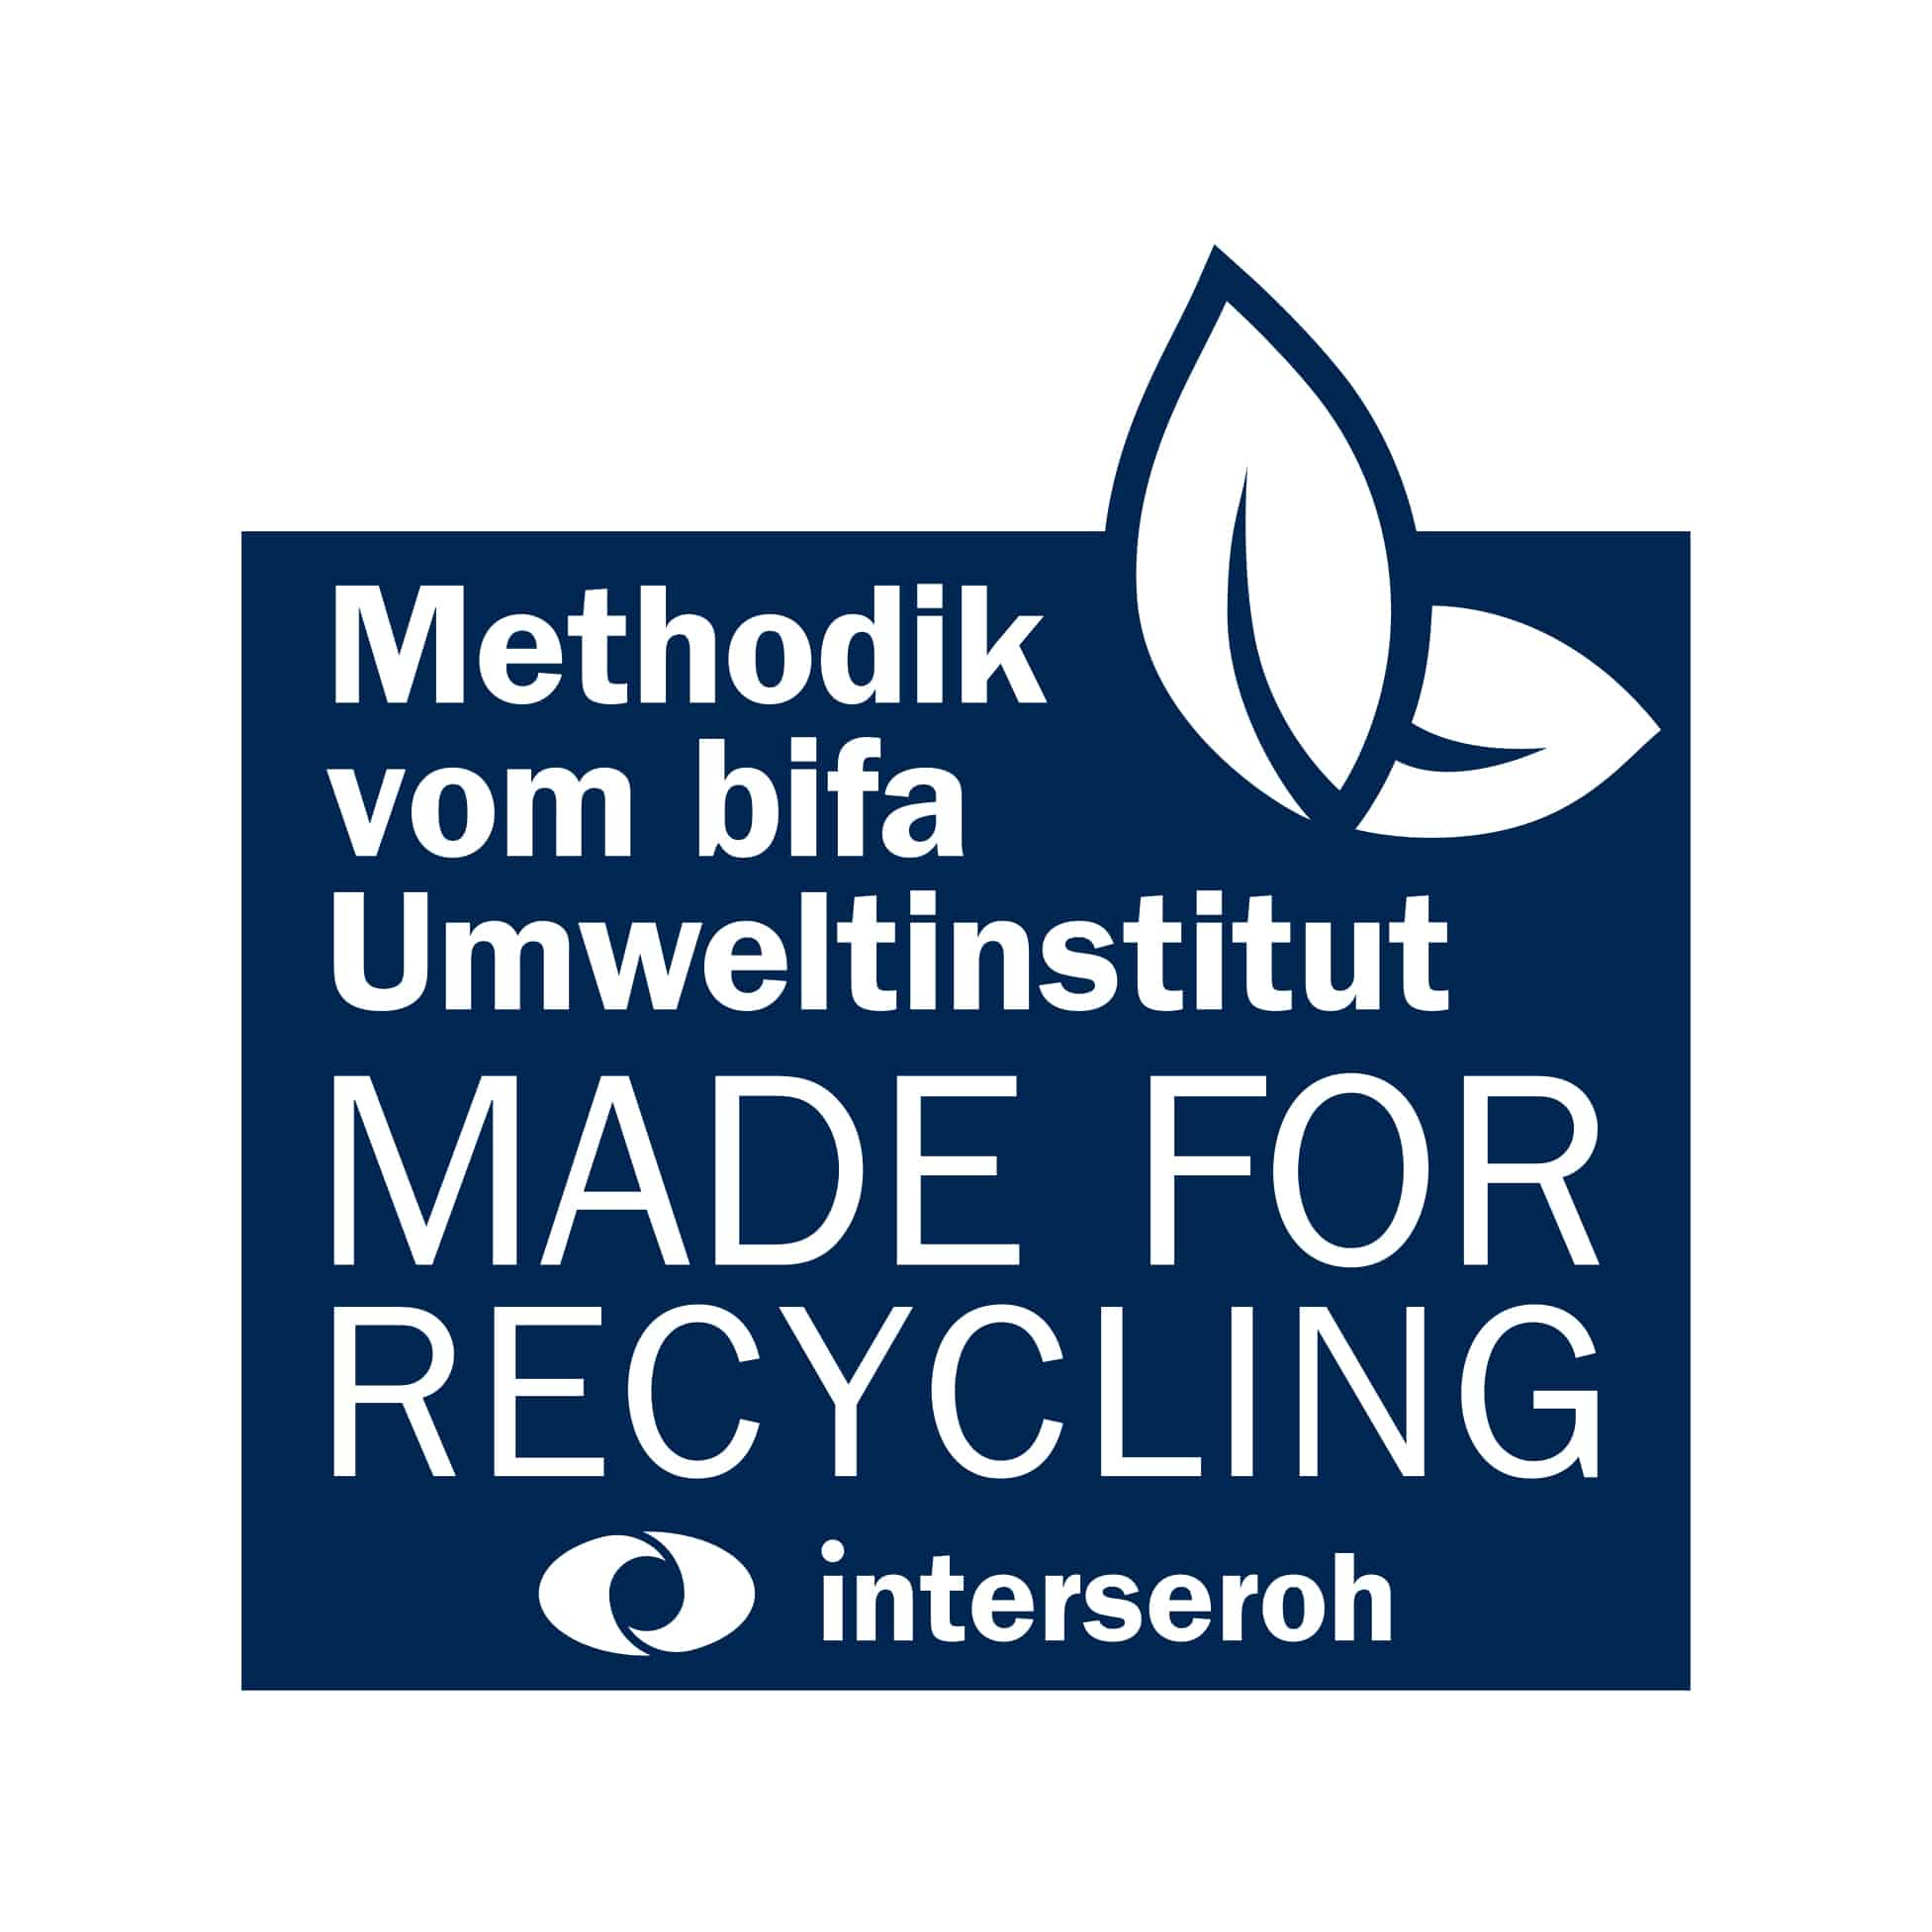 SIHL awarded 'Made for Recycling' certificate for new ARTYSIO Packaging Material